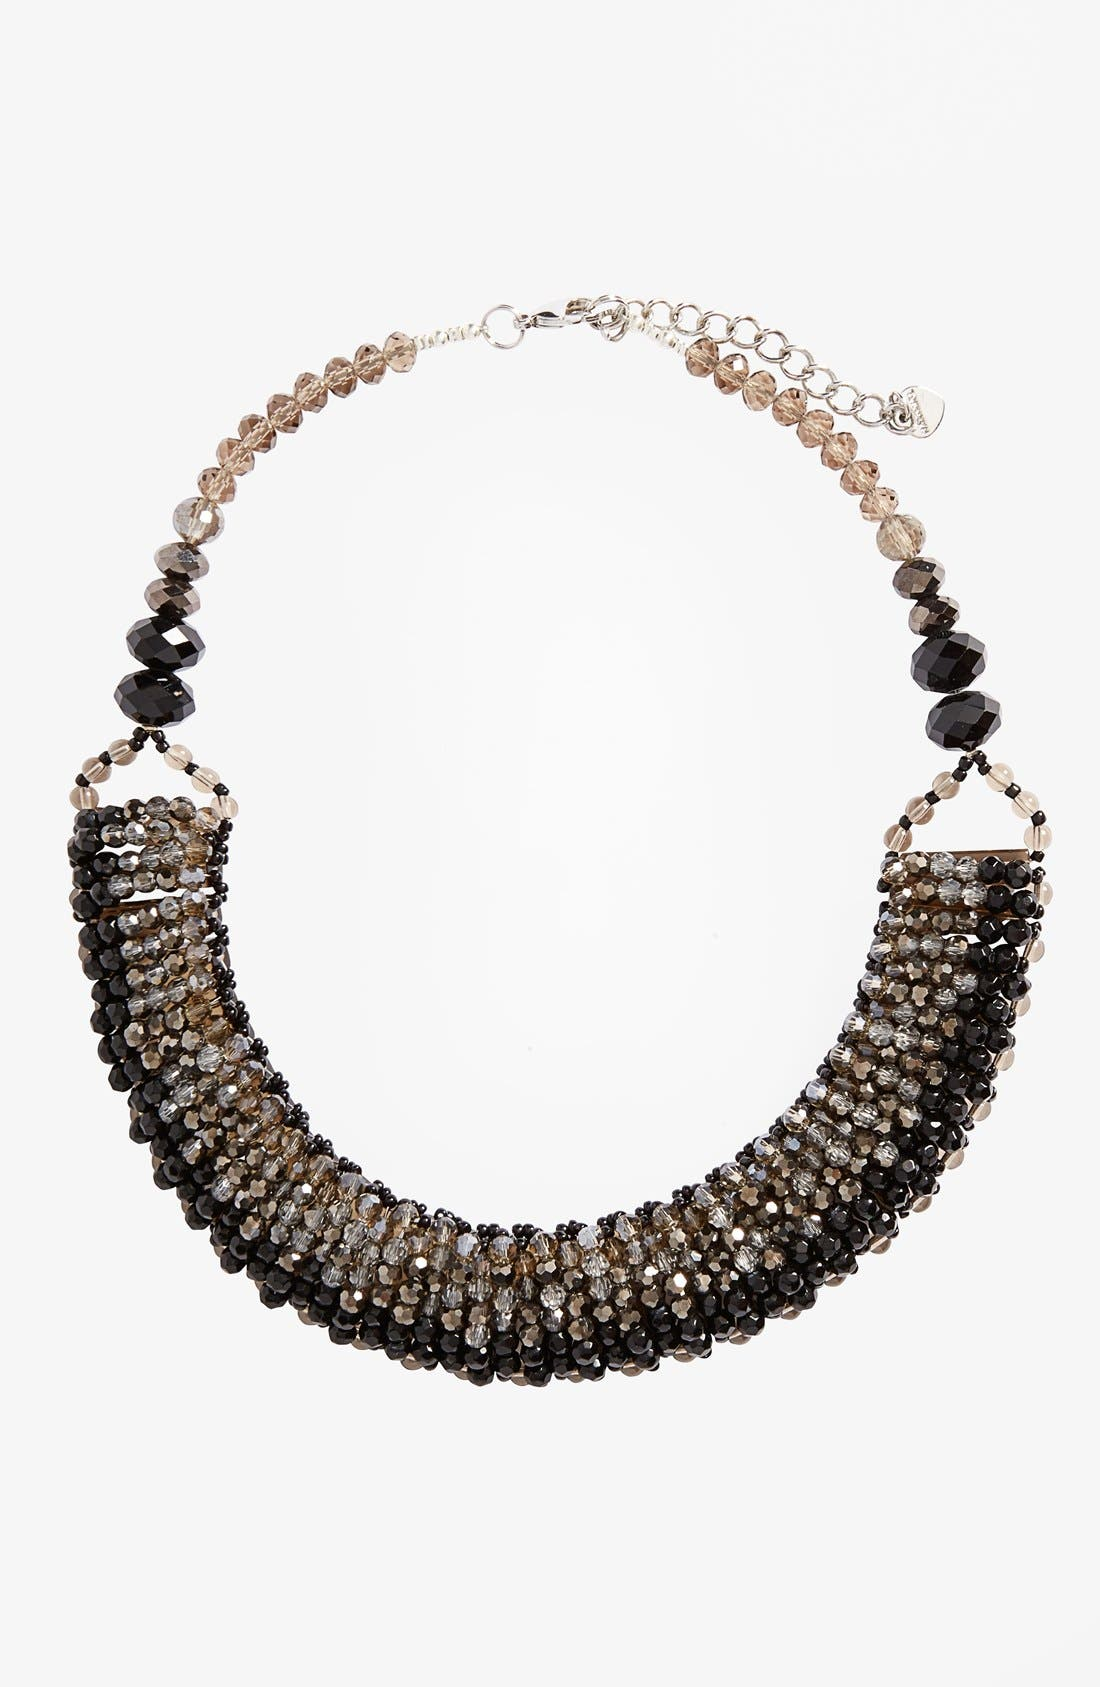 Main Image - Nakamol Design 'Half Line Couture' Collar Necklace